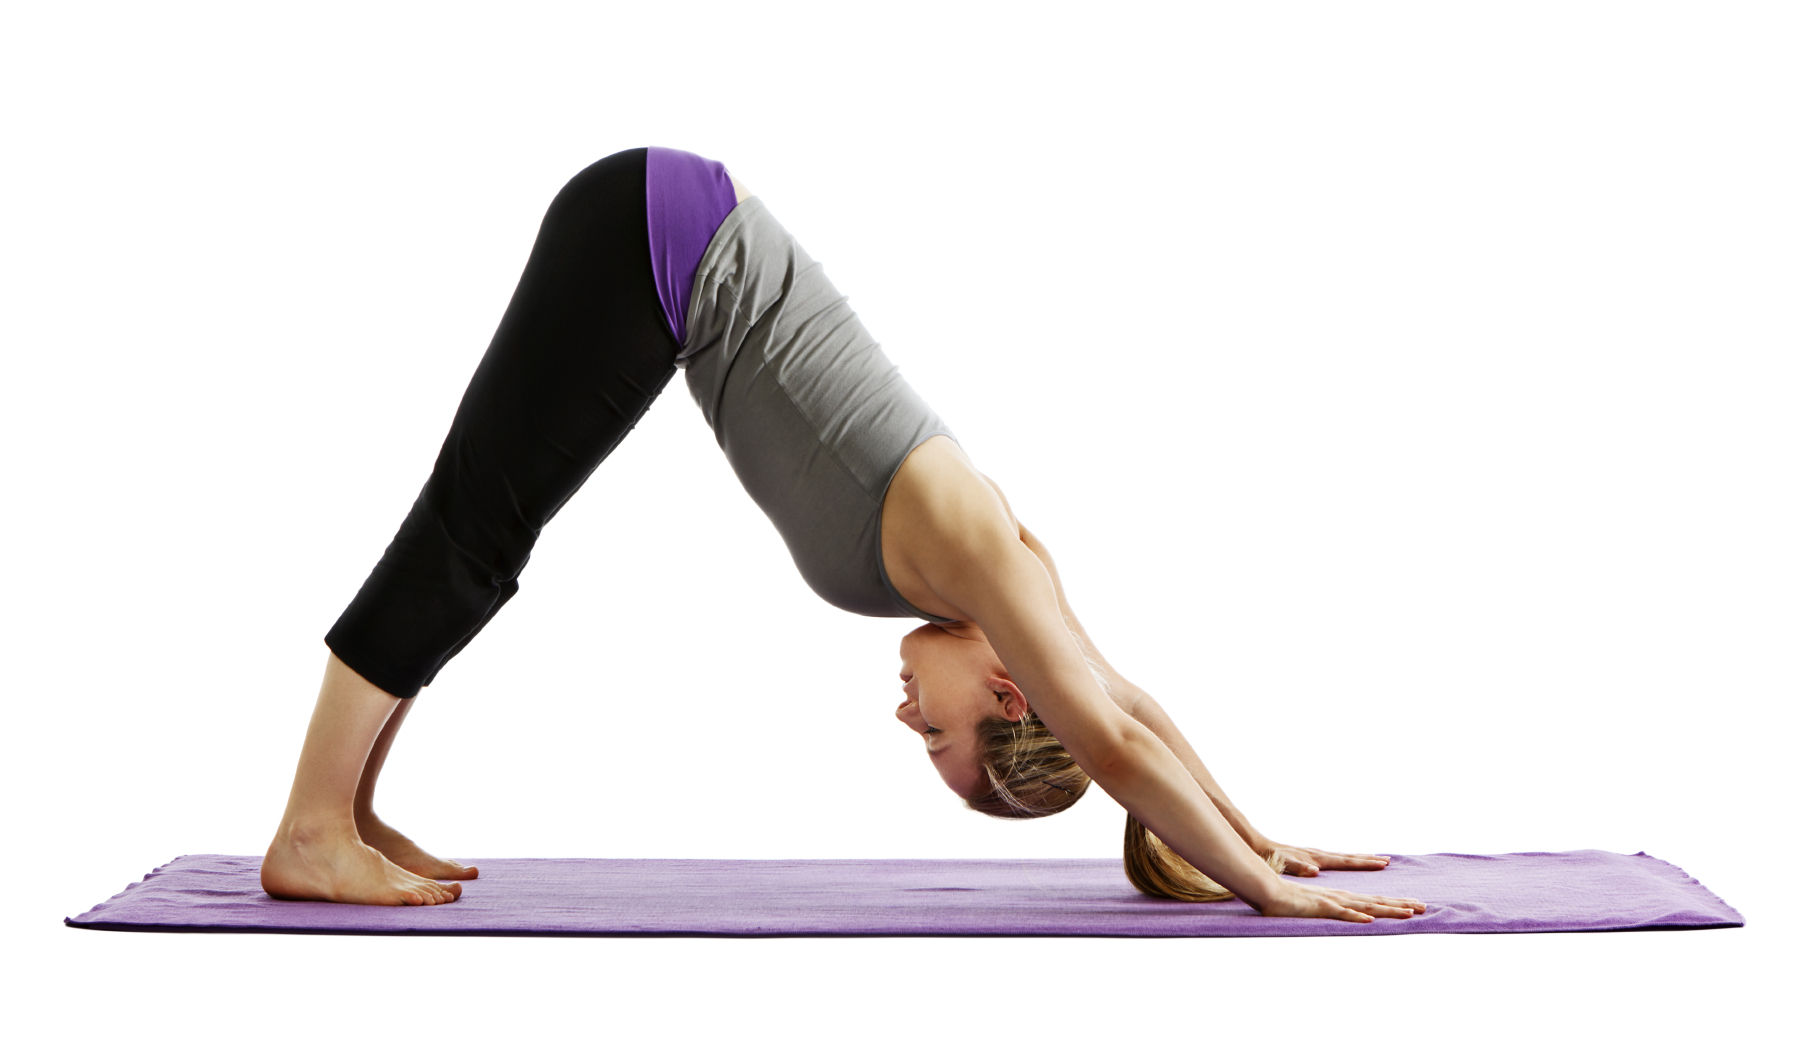 Downward dog posture, https://www.info-on-high-blood-pressure.com/Yoga.html